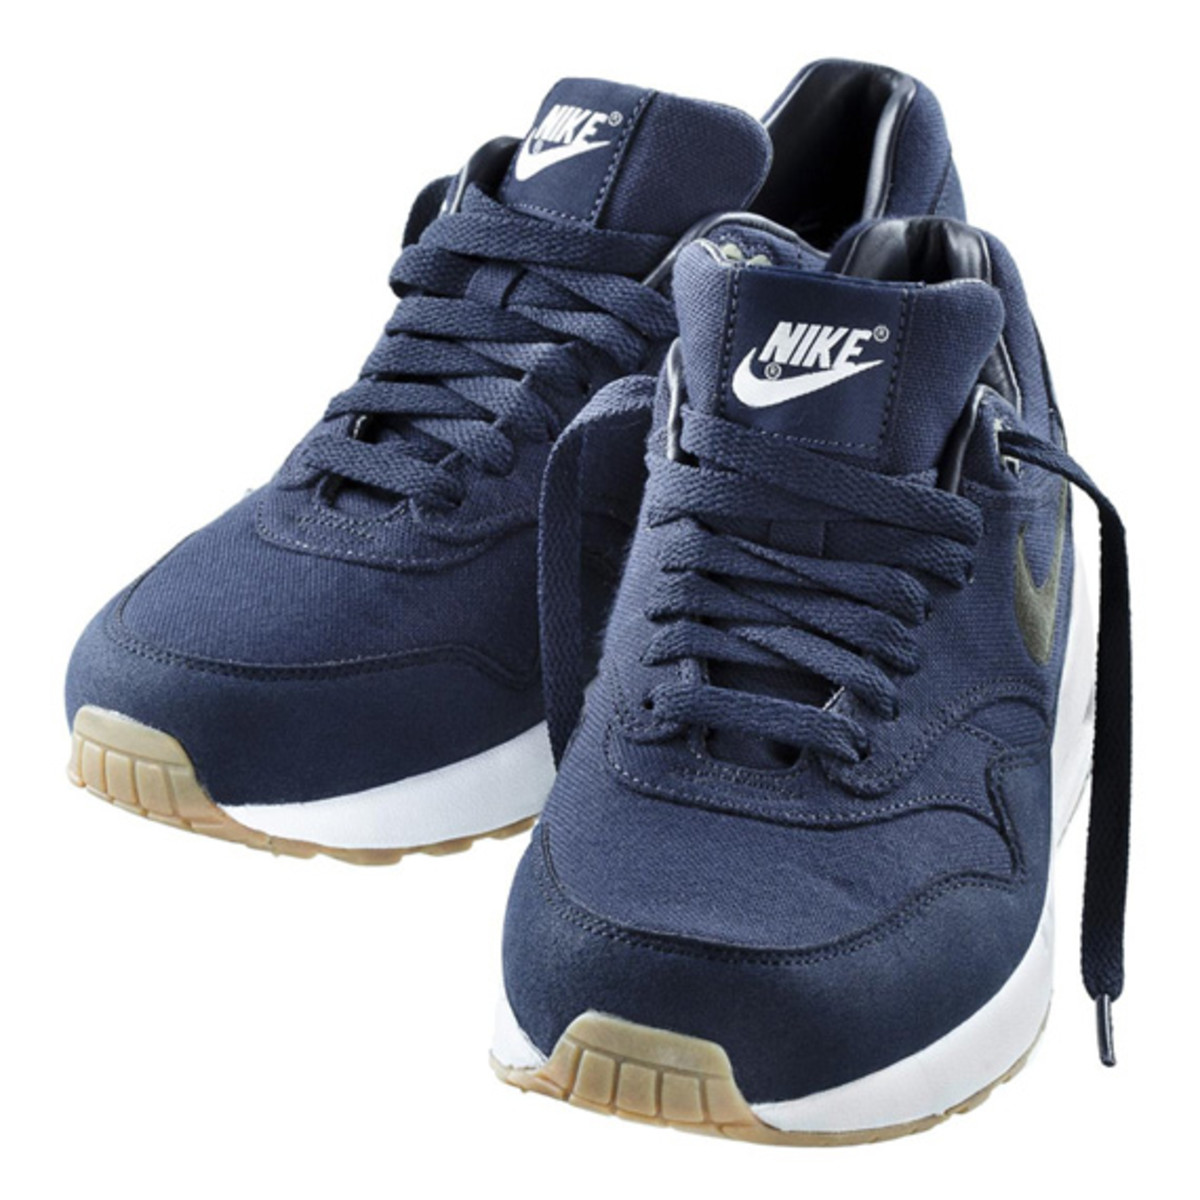 apc-nike-air-max-1-available-now-05